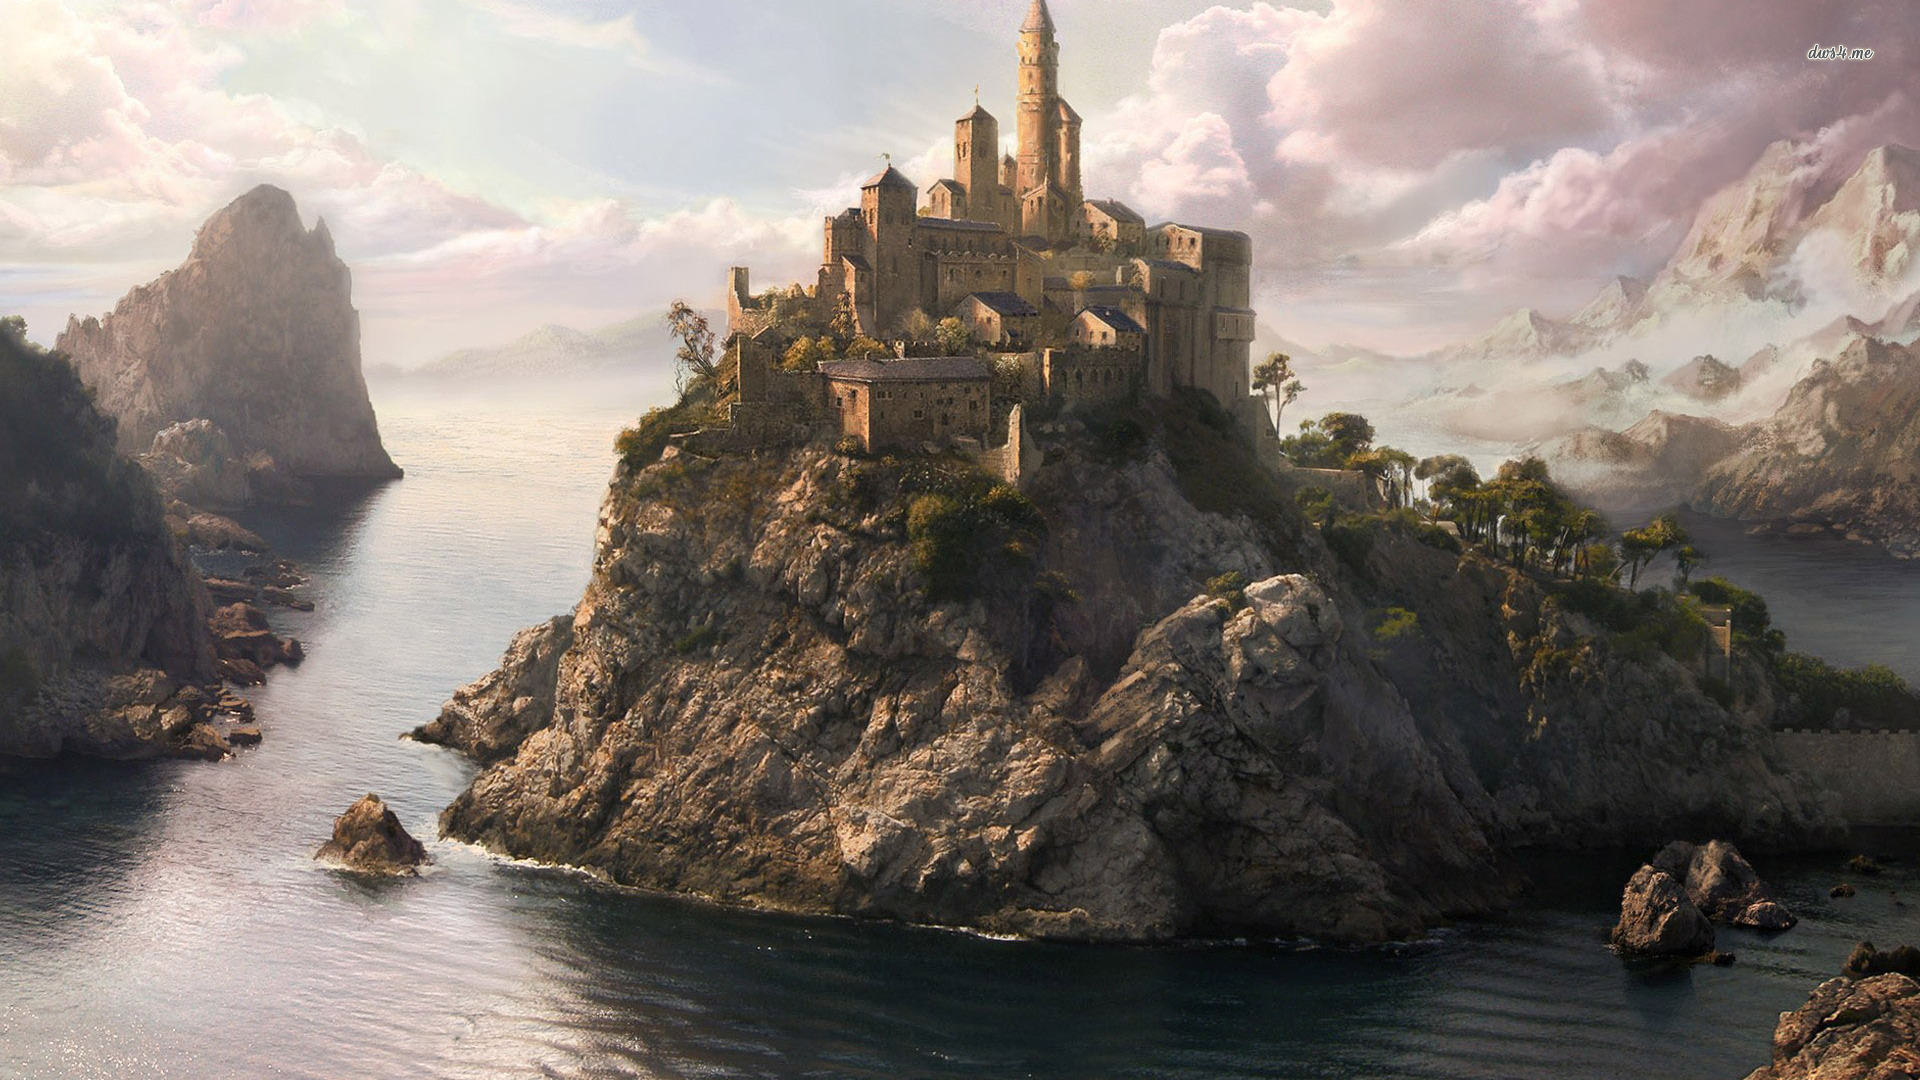 2148d1357114530-share-your-wallpaper-2844-island-castle-1920x1080-fantasy-wallpaper.jpg